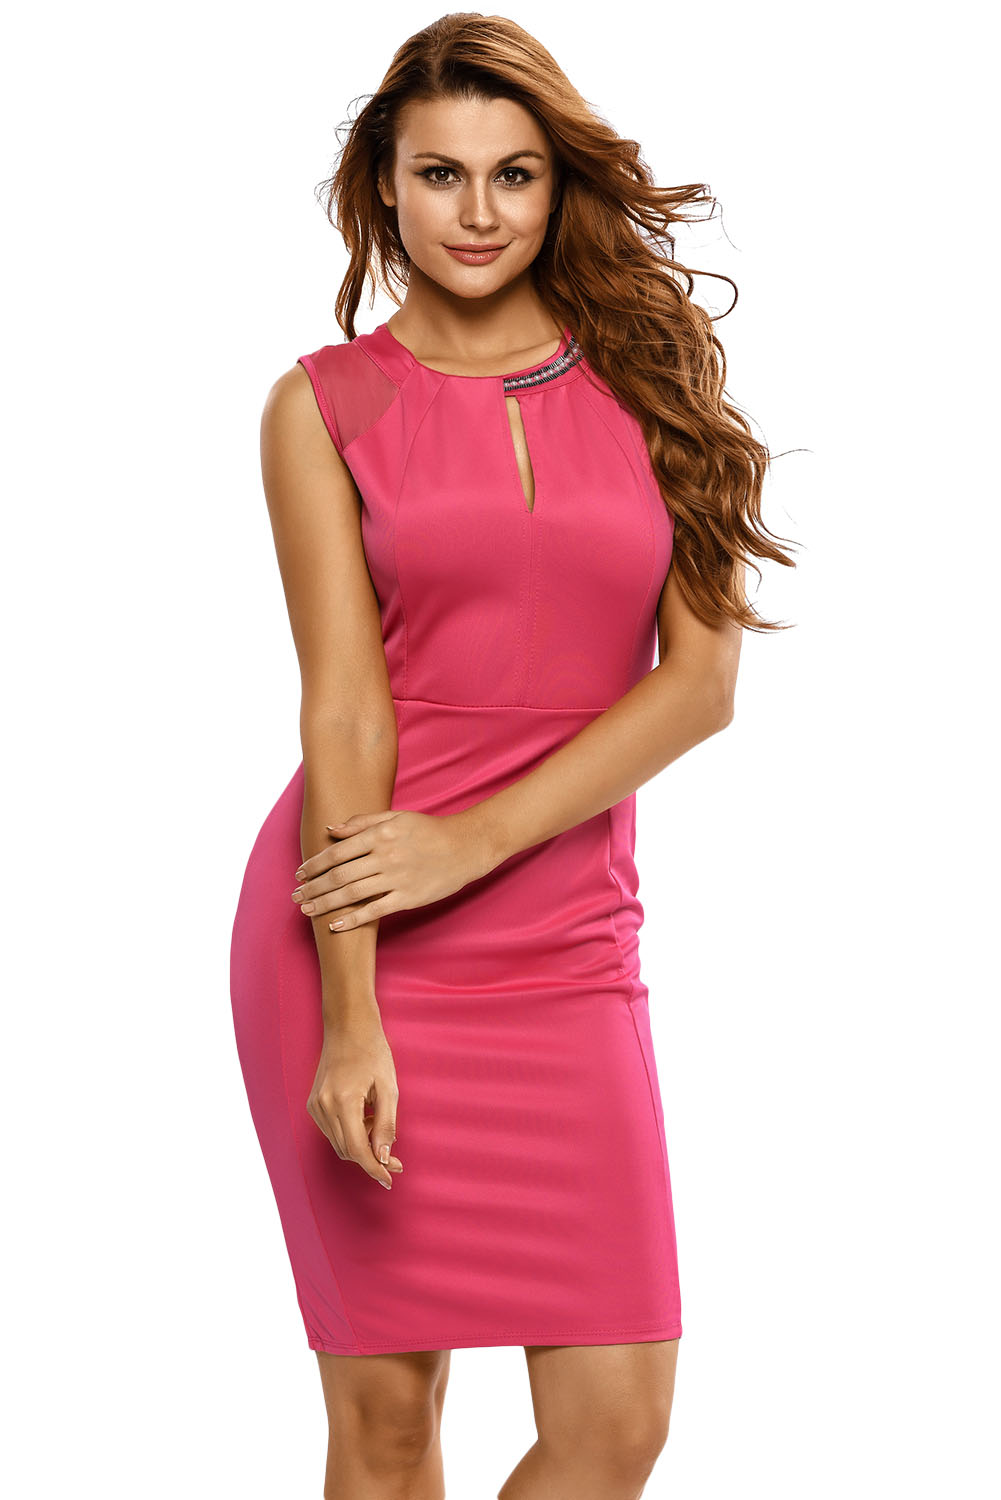 Hot Pink Mini Dress Promotion-Shop for Promotional Hot Pink Mini ...